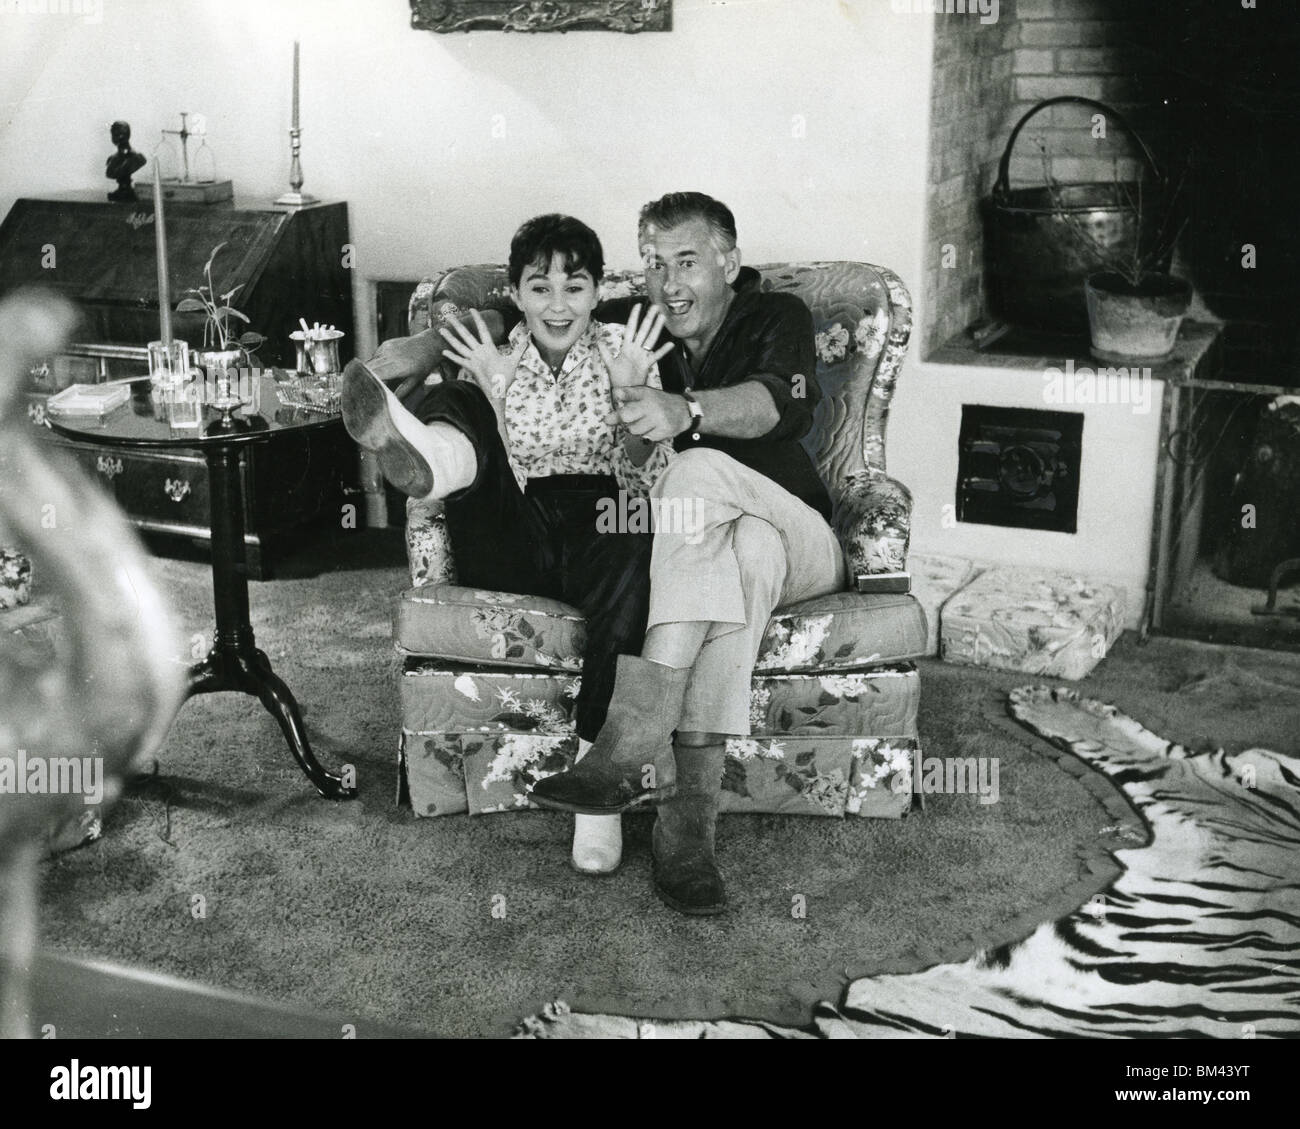 JEAN SIMMONS - UK film actress and husband Stewart Granger about 1956 at their ranch home near Tuscon, Arizona - Stock Image